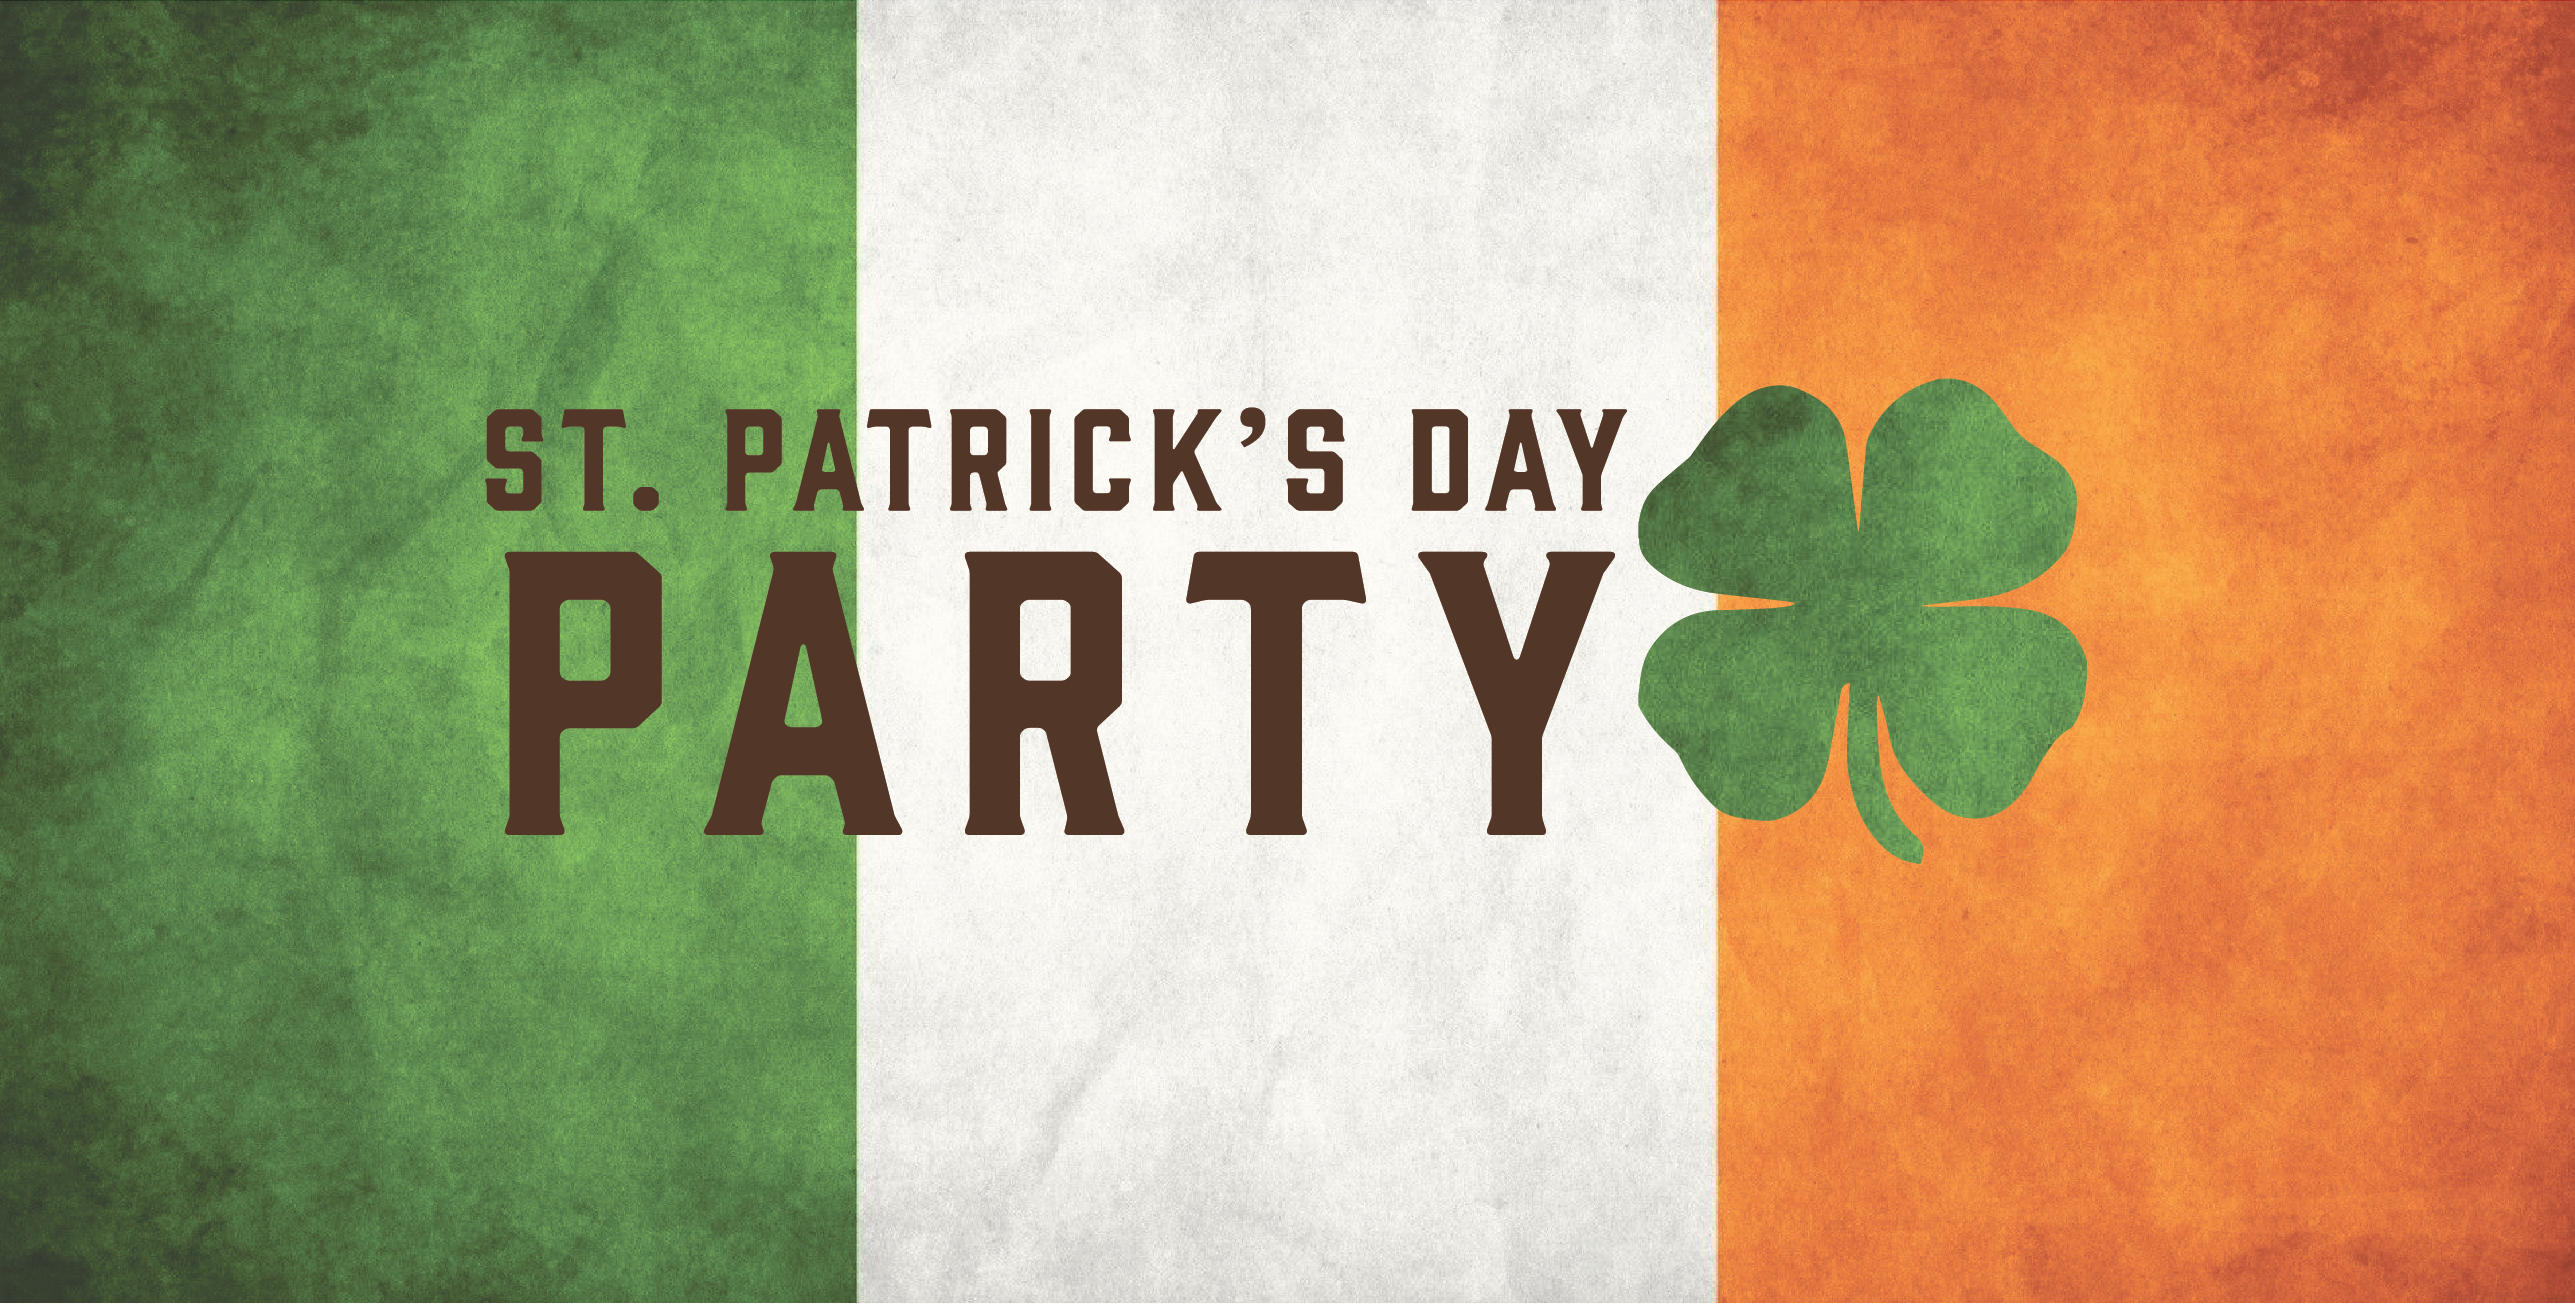 How To Plan A St. Patrick's Day Party For Preschoolers